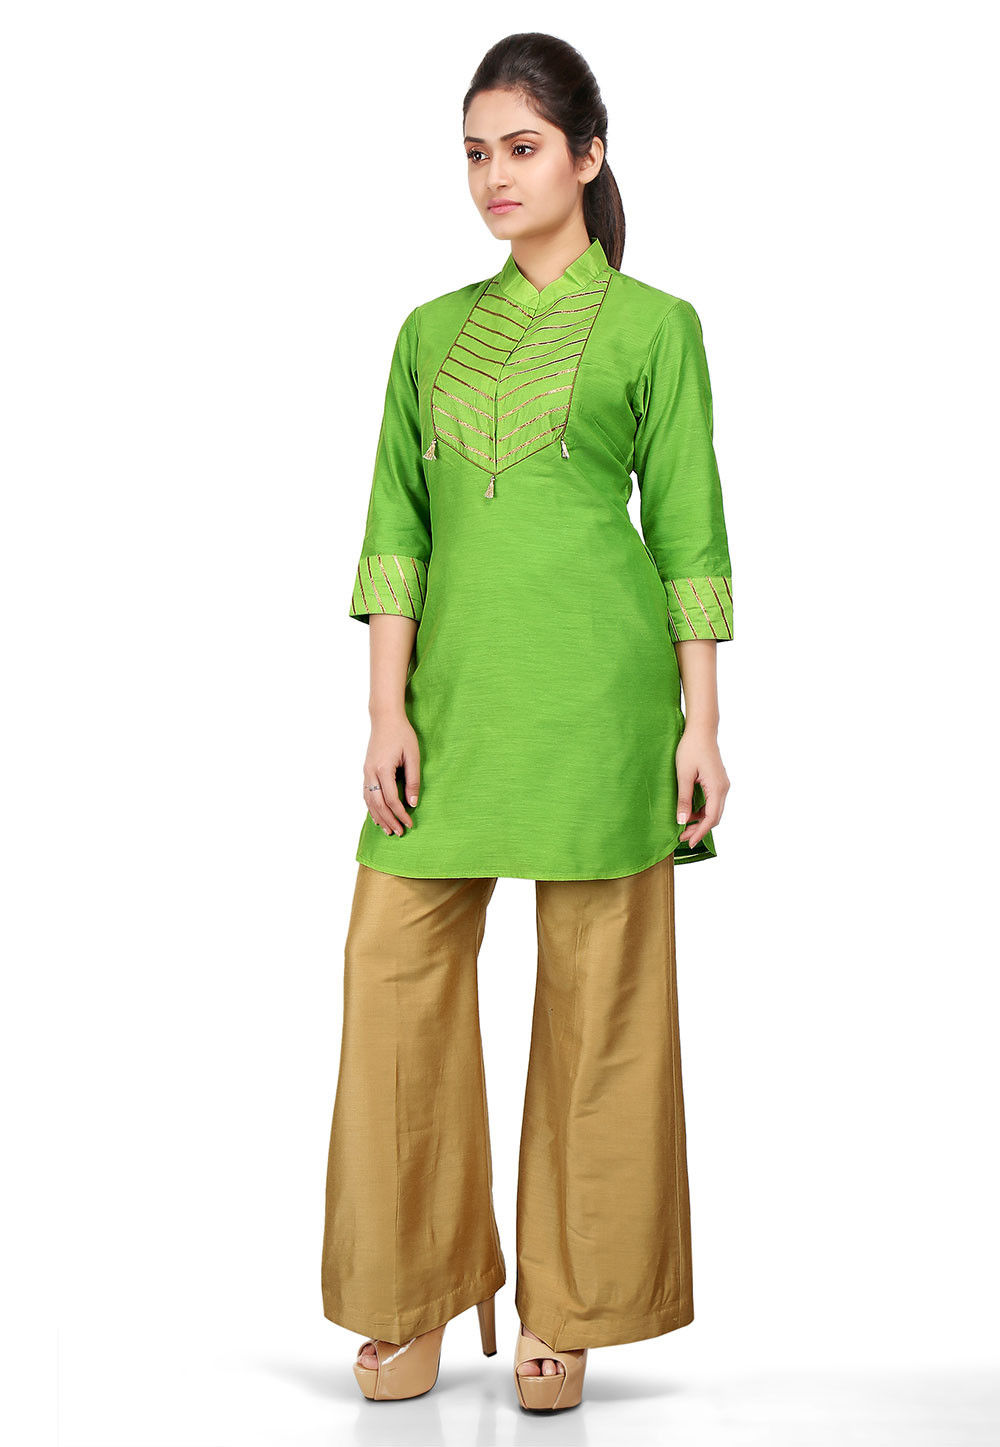 Lace Border Chanderi Cotton Tunic in Green